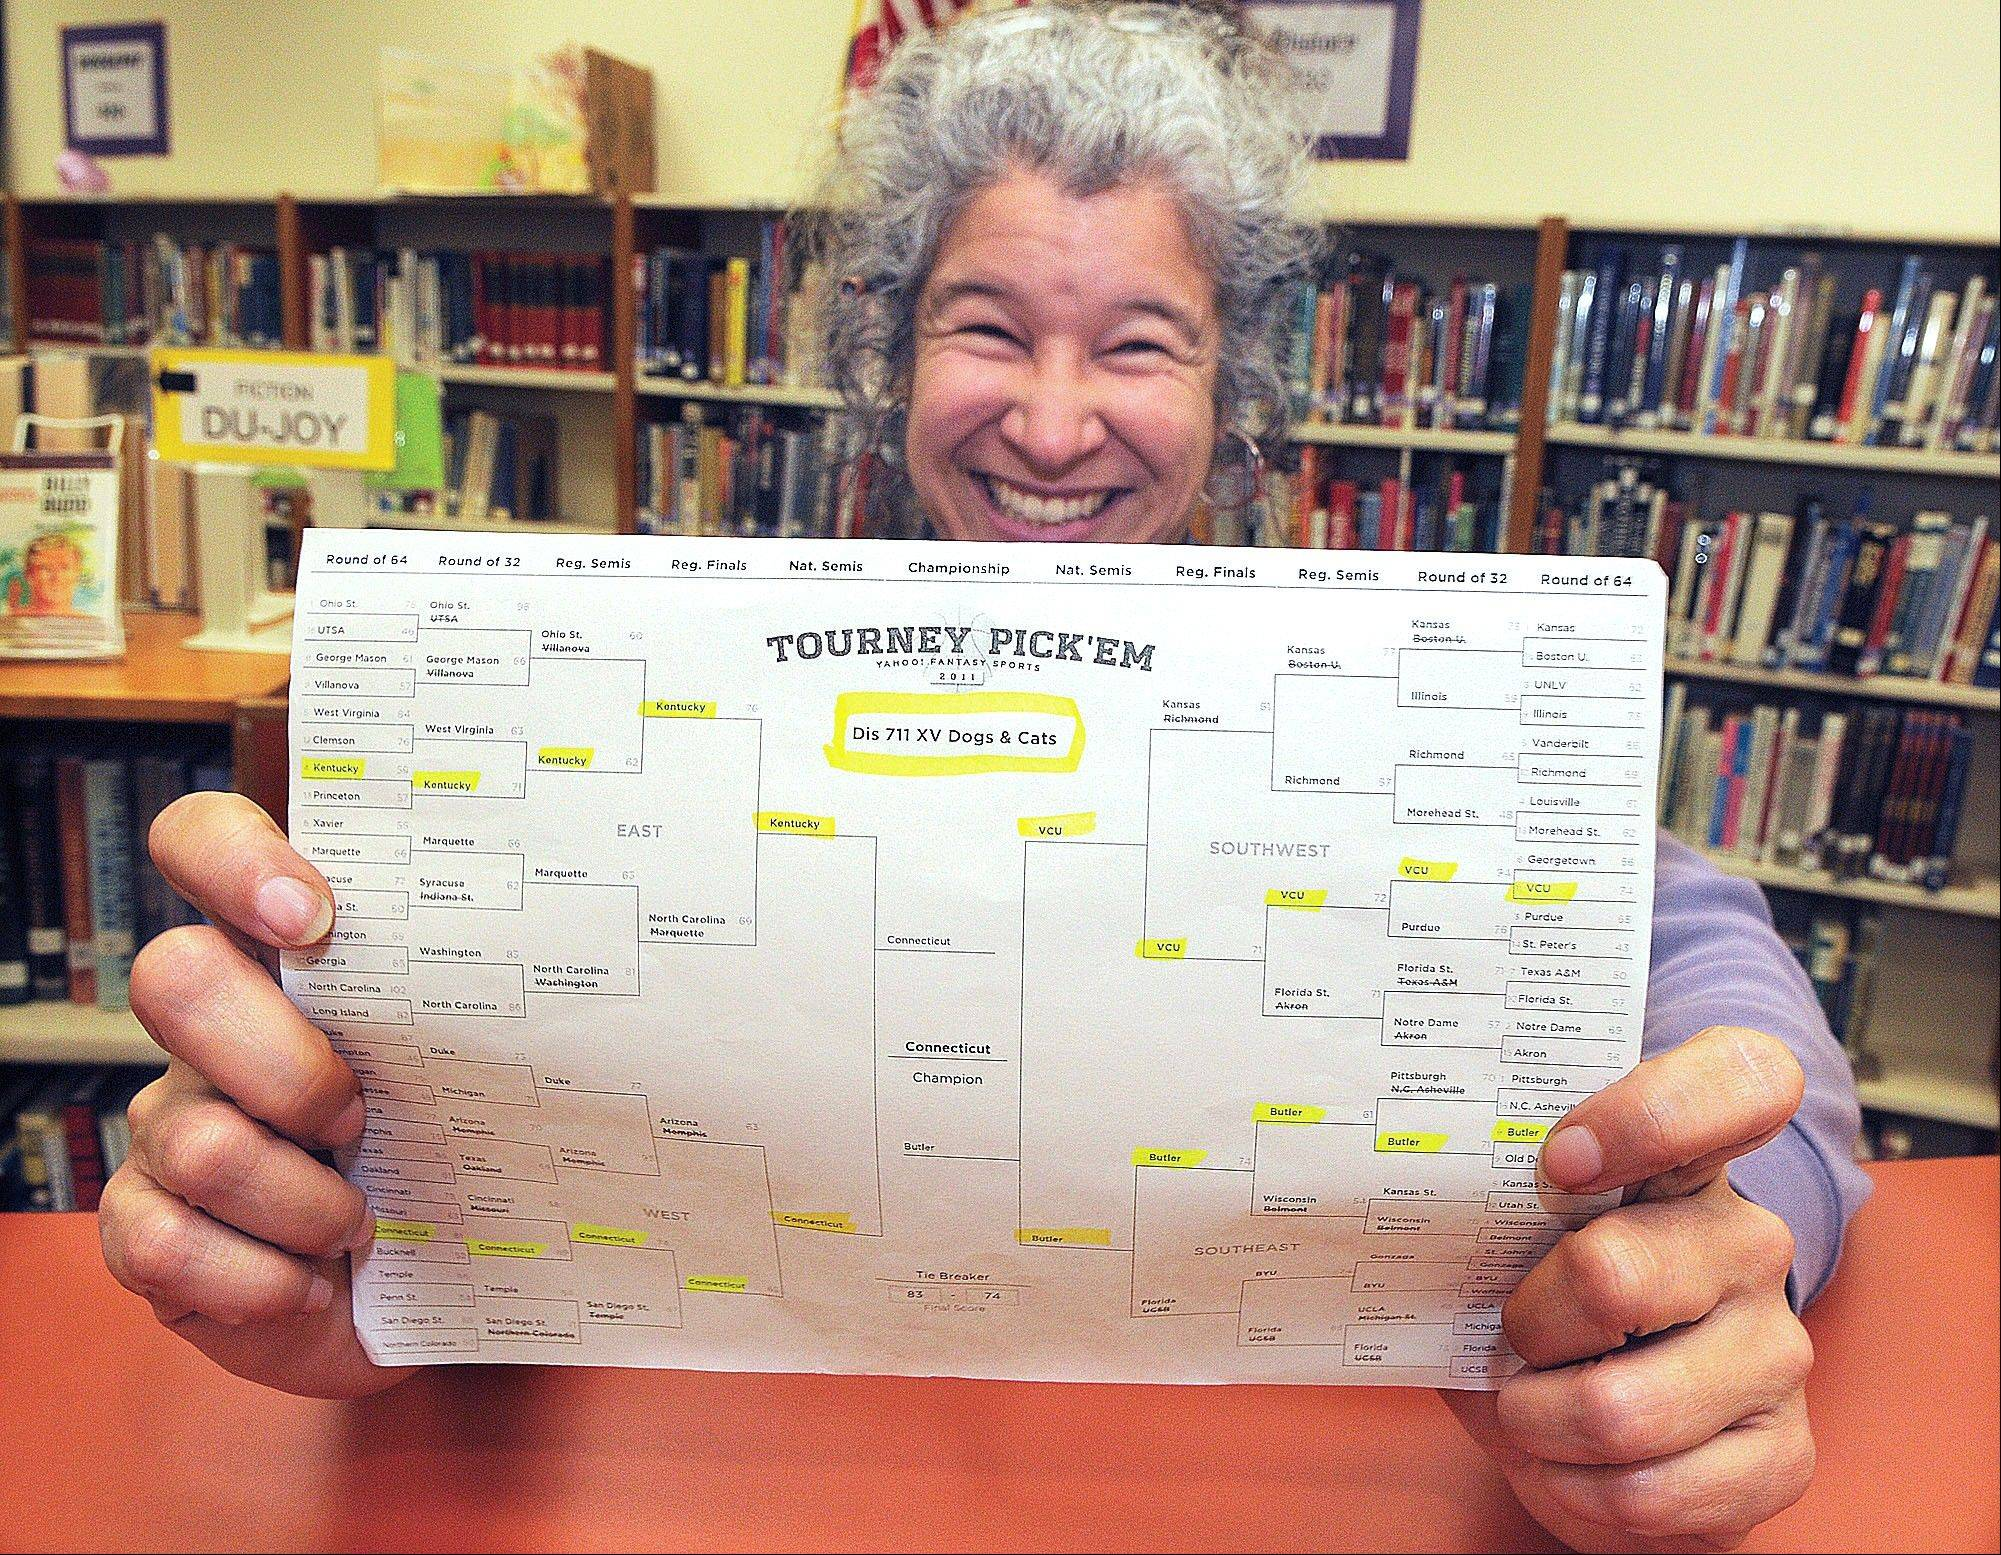 Jefferson High School librarian Diana Inch posted the winning NCAA tournament bracket in the 2011 Yahoo.com's online contest in Jefferson, Ore. The odds of completing the perfect bracket by picking the higher-seeded team are 35 billion to 1.